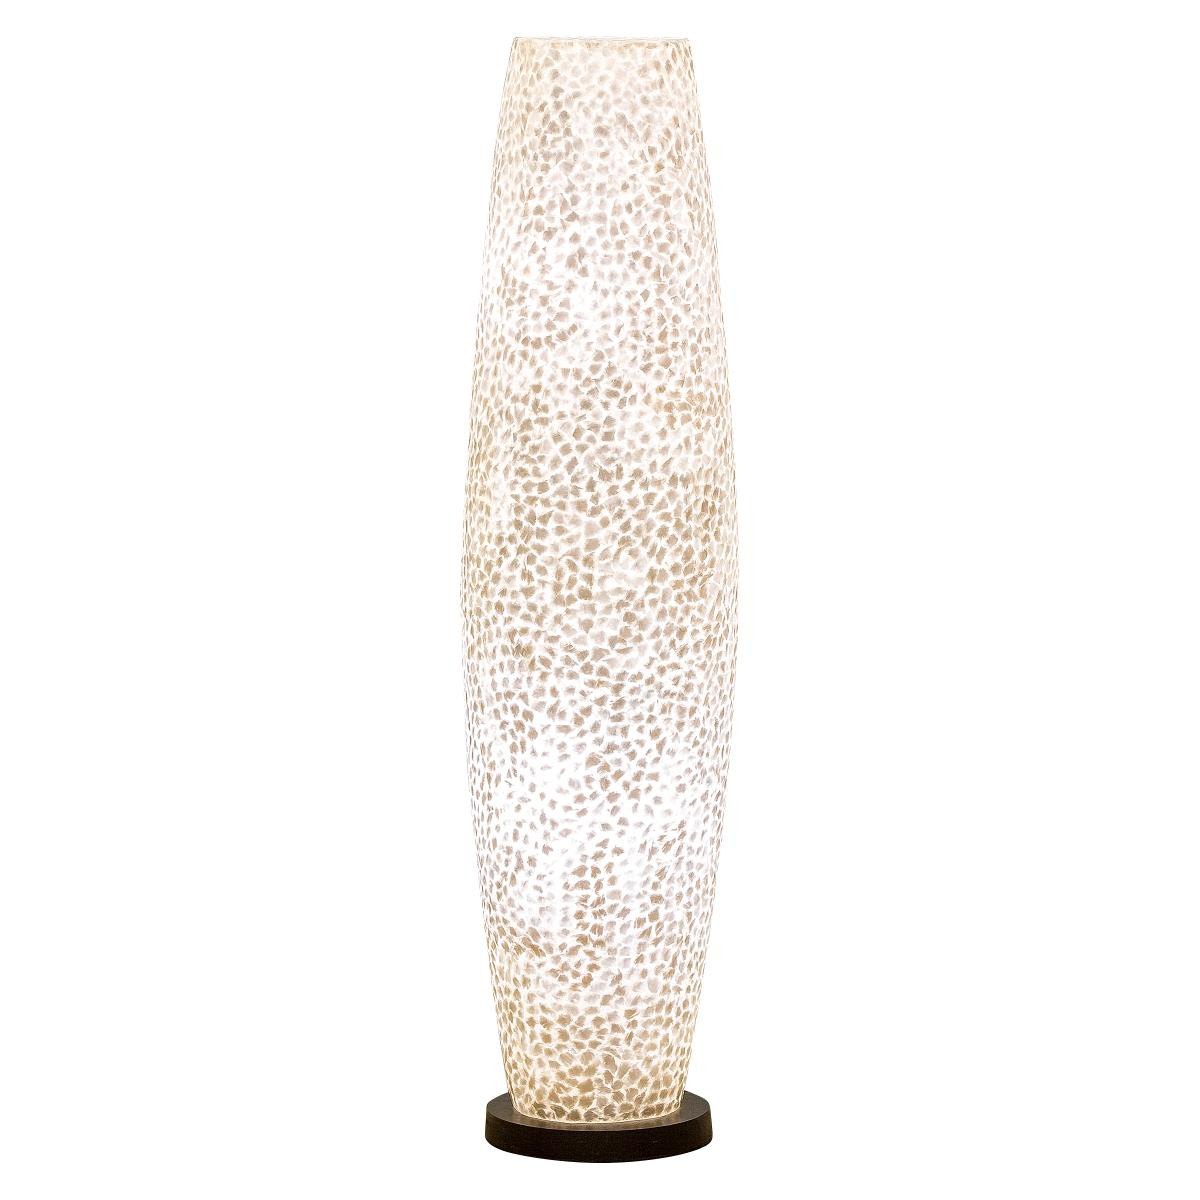 30 Great Capiz Shell Vase